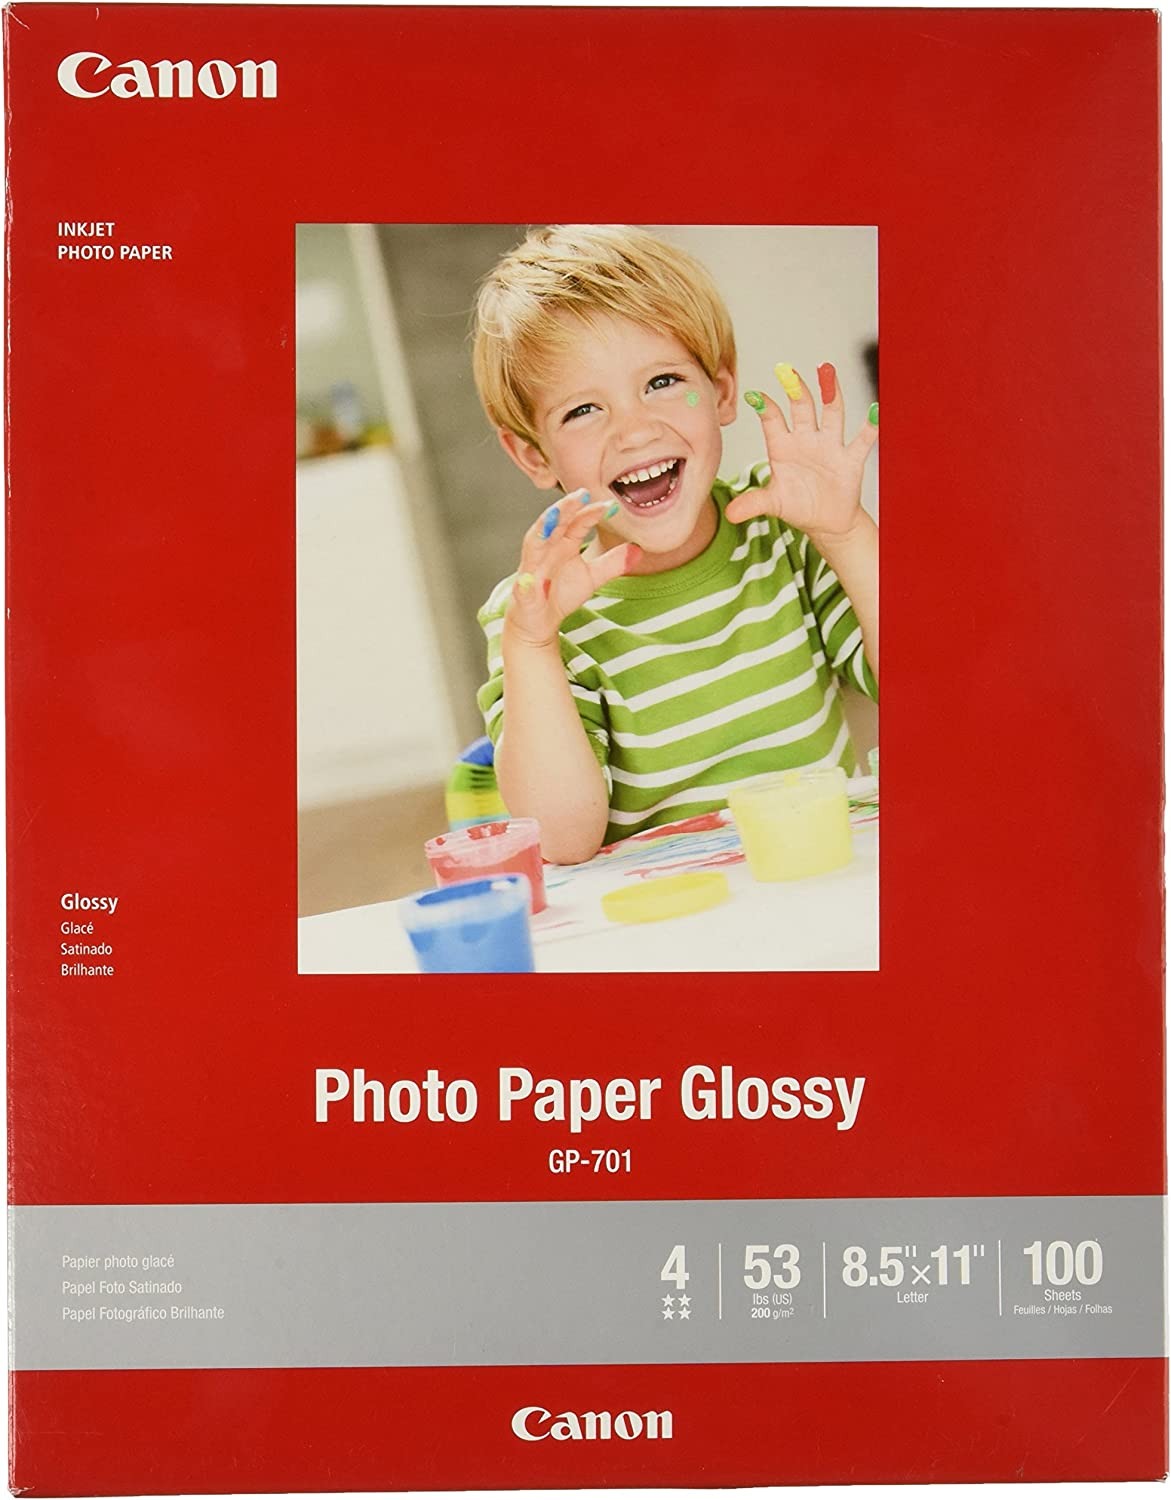 "CanonInk Glossy Photo Paper 8.5"" x 11"" 100 Sheets (1433C004),Value not found"